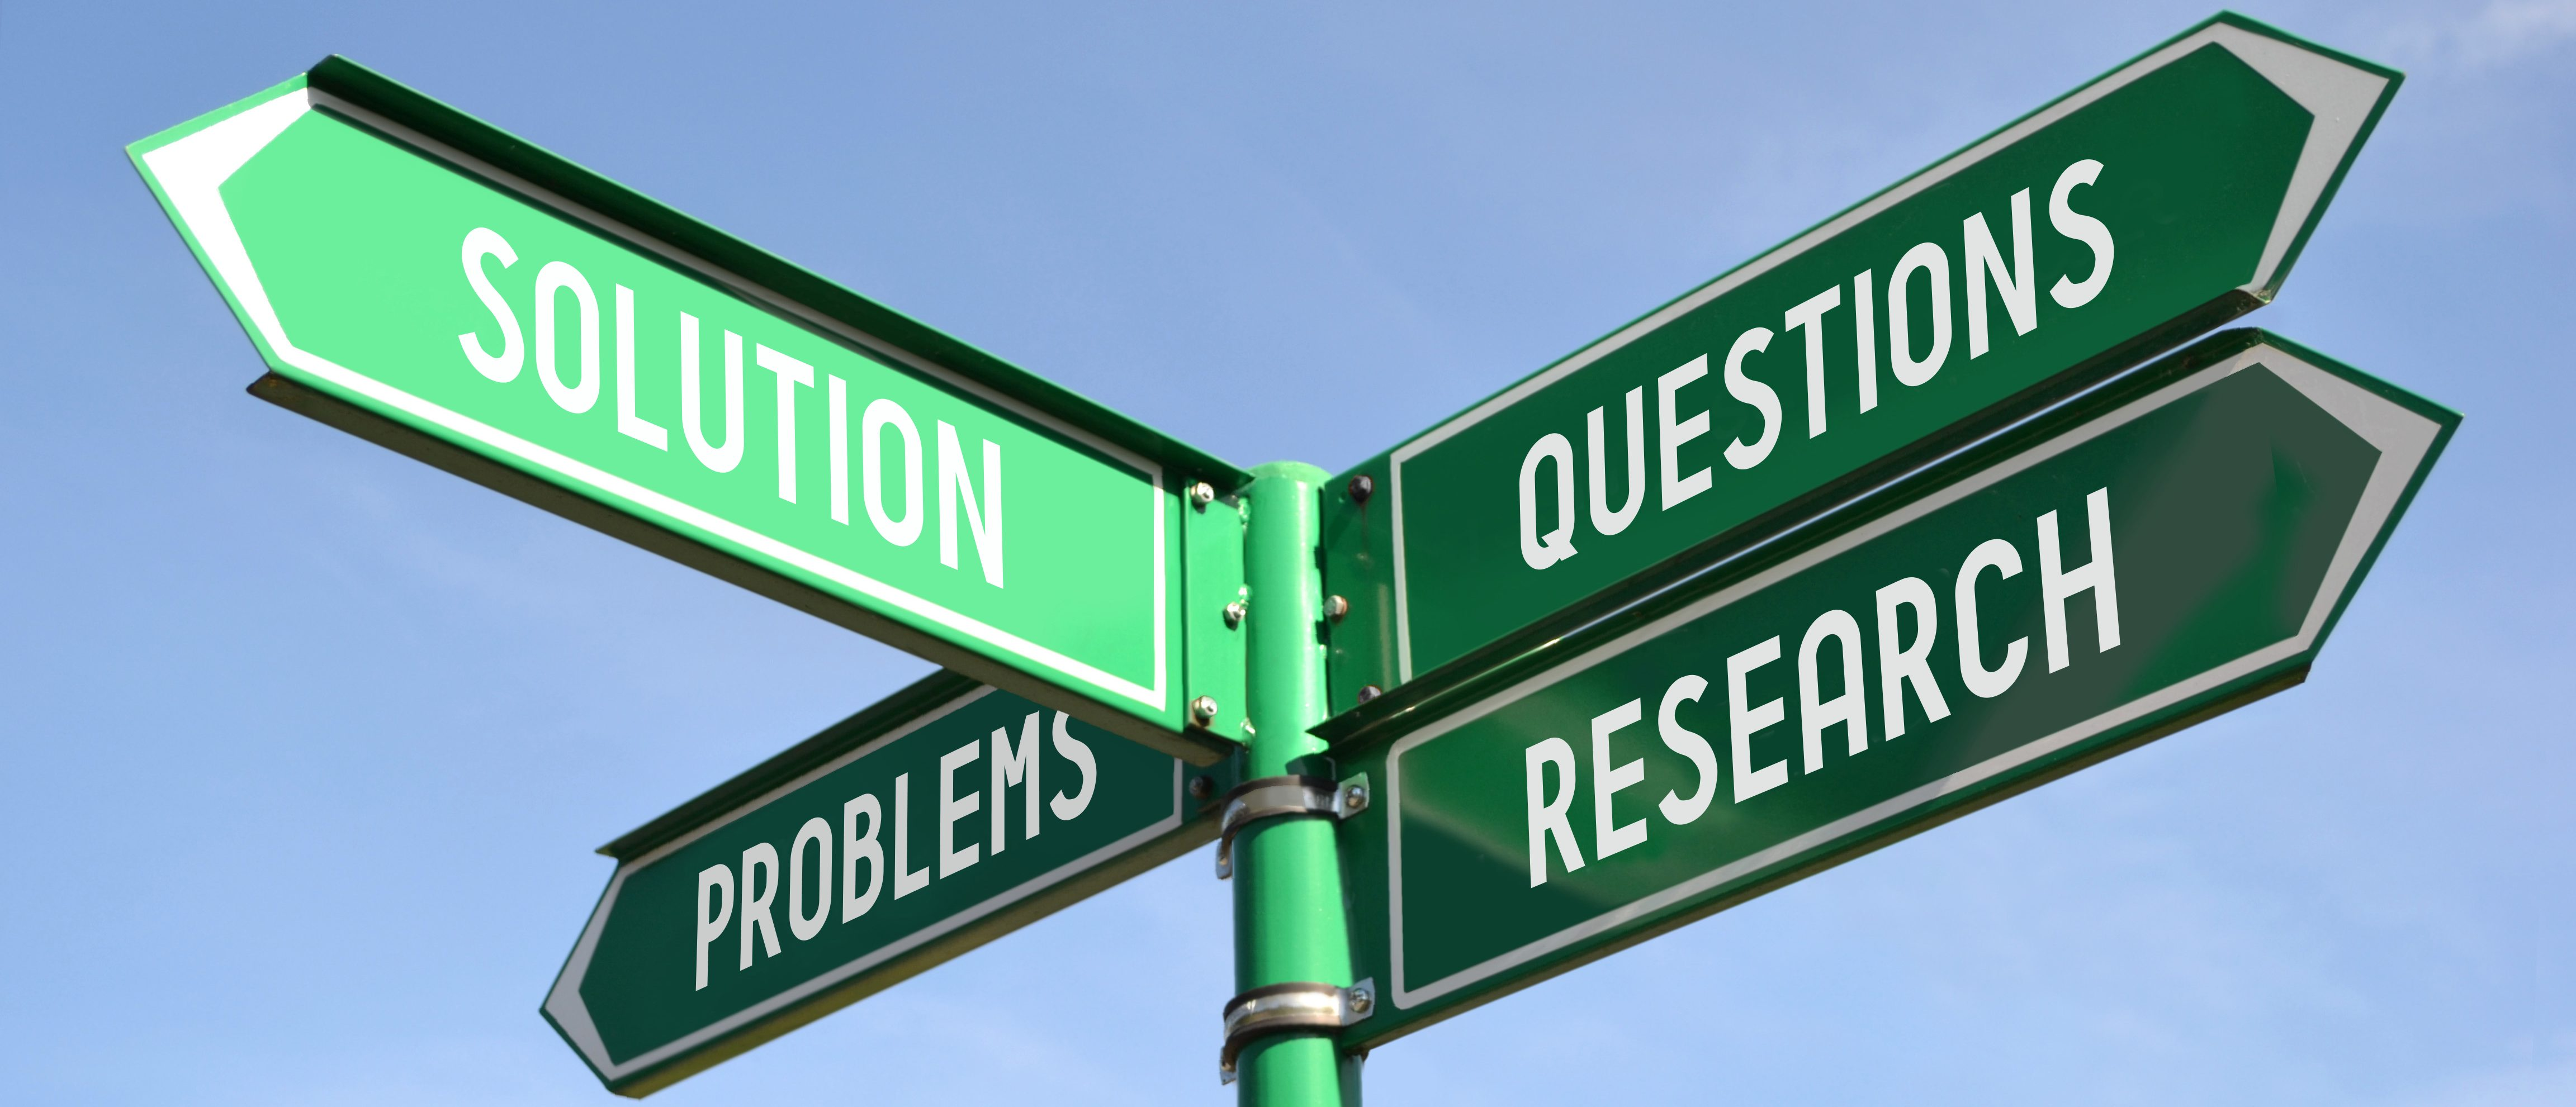 Cannabis Studies: Street sign showing arrows to questions, research, problems, and solutions